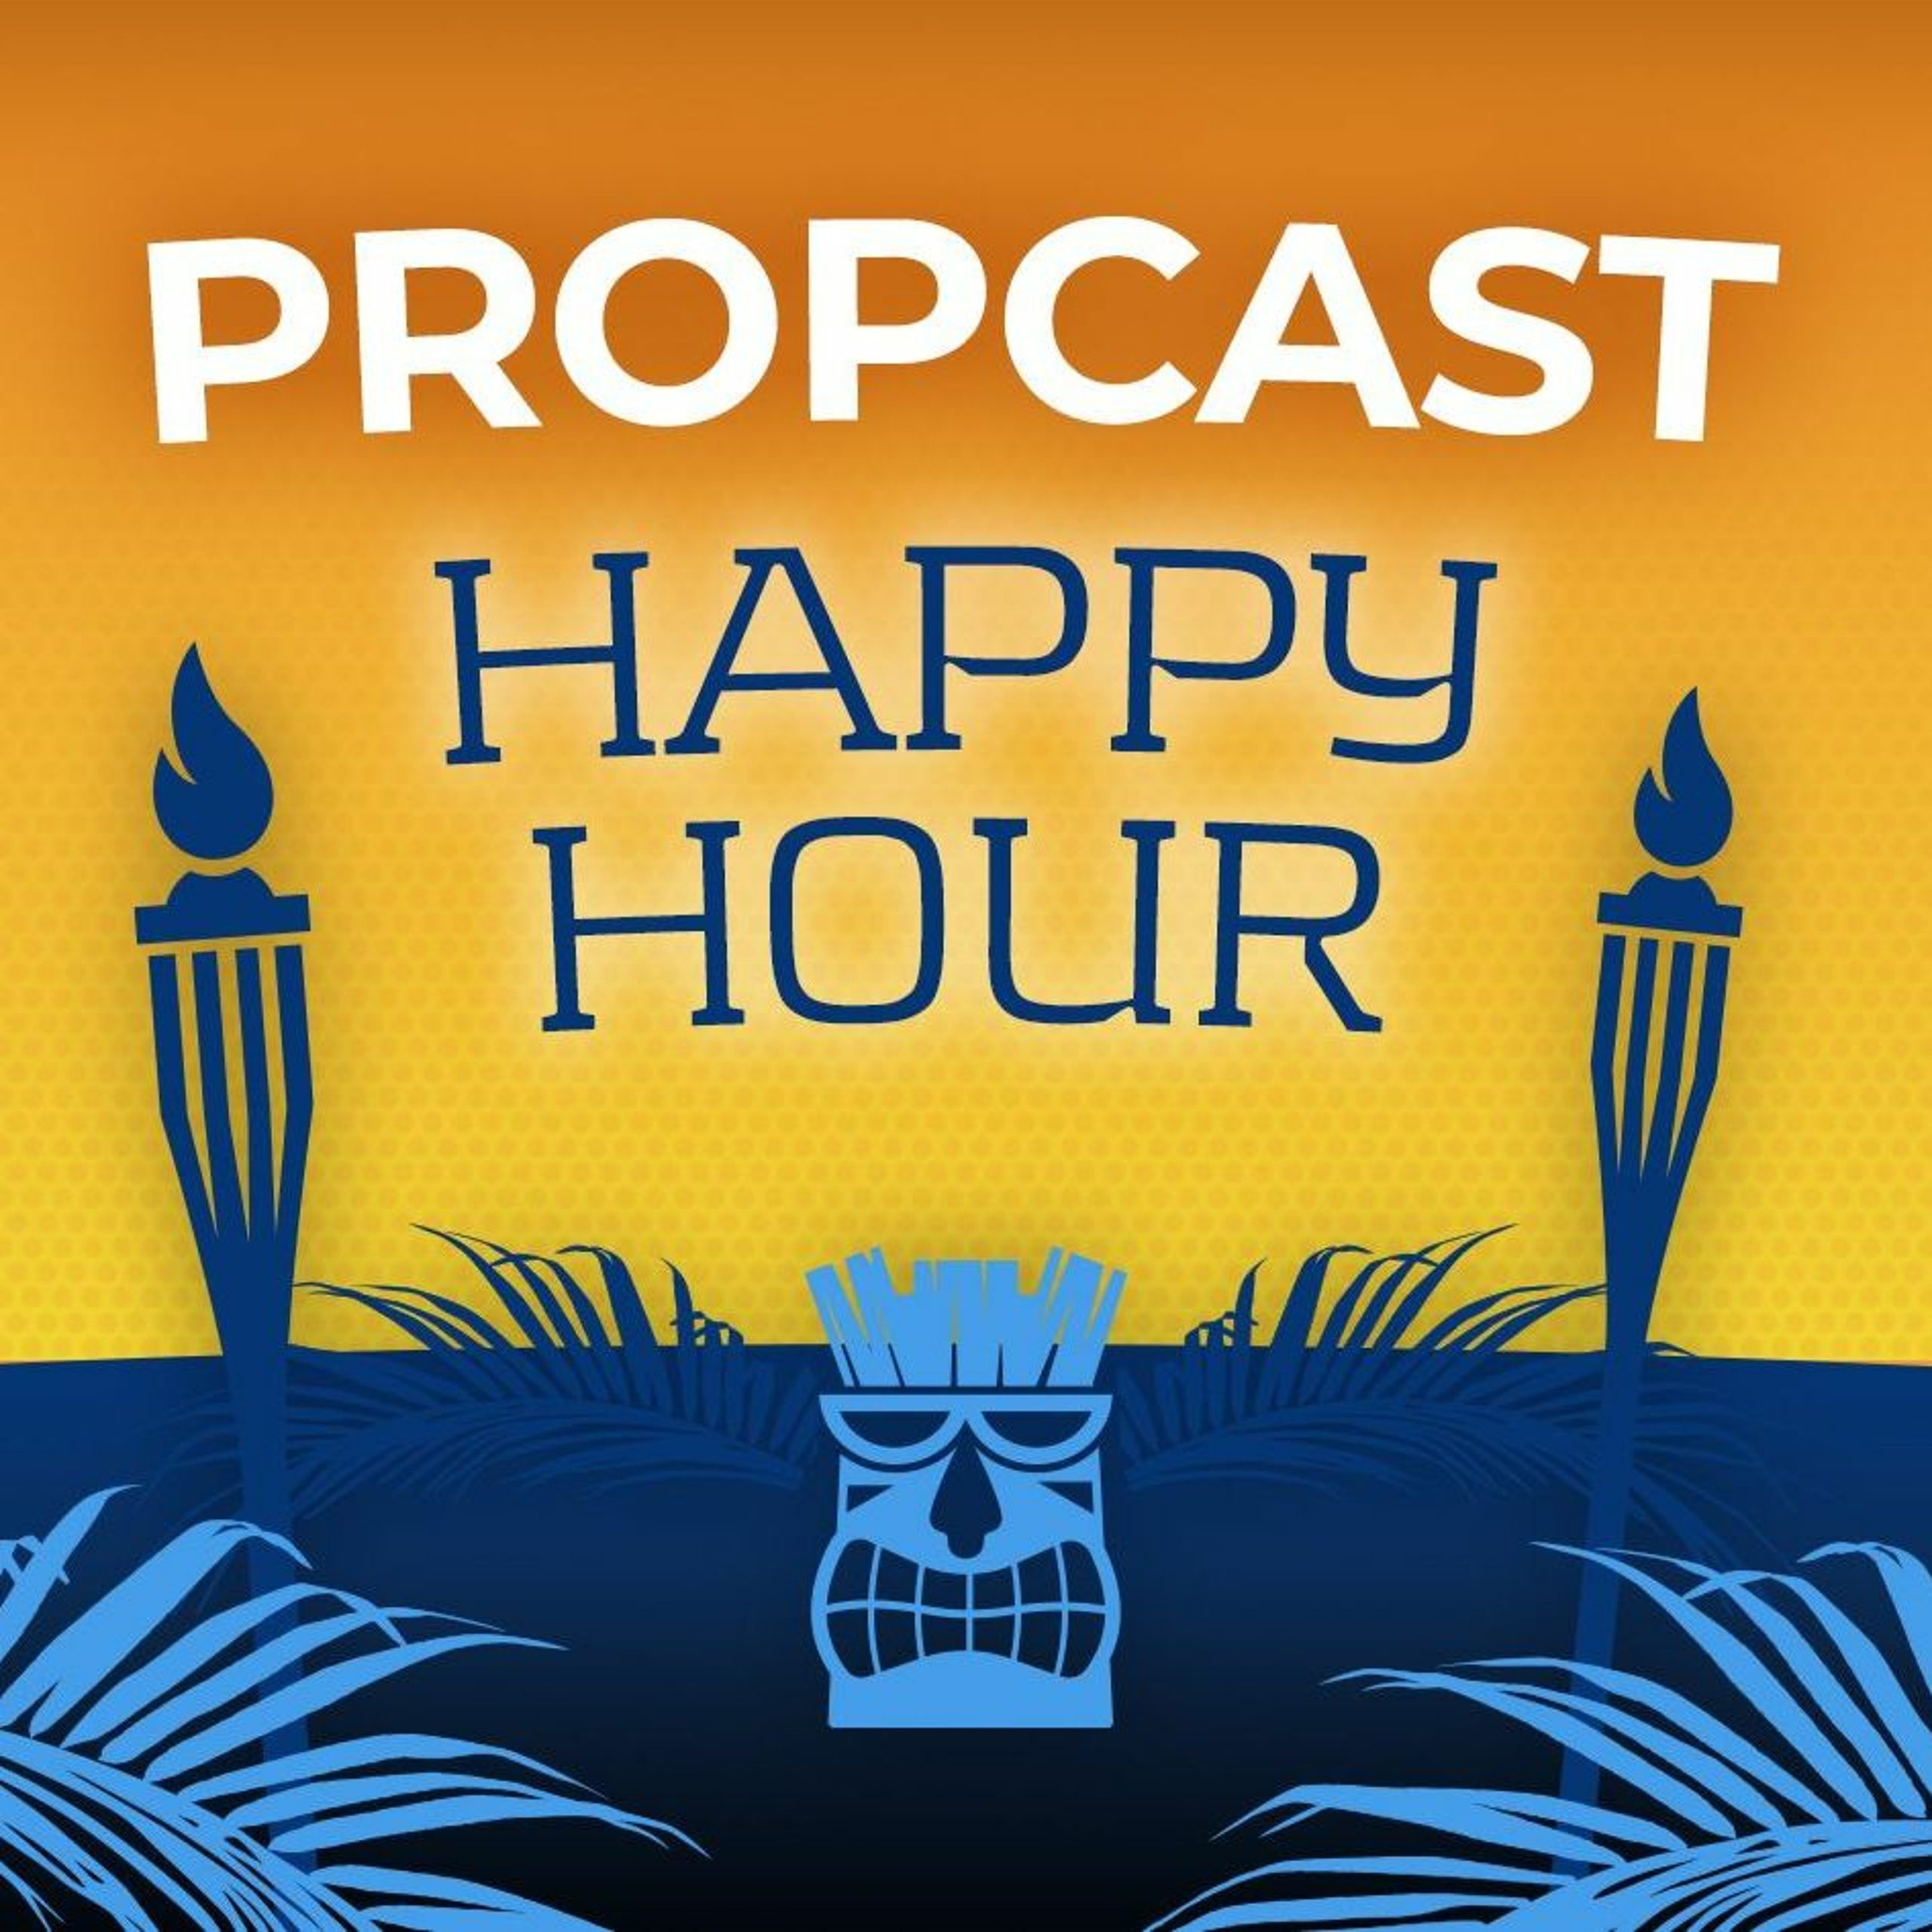 Propcast Happy Hour podcast thumbnail